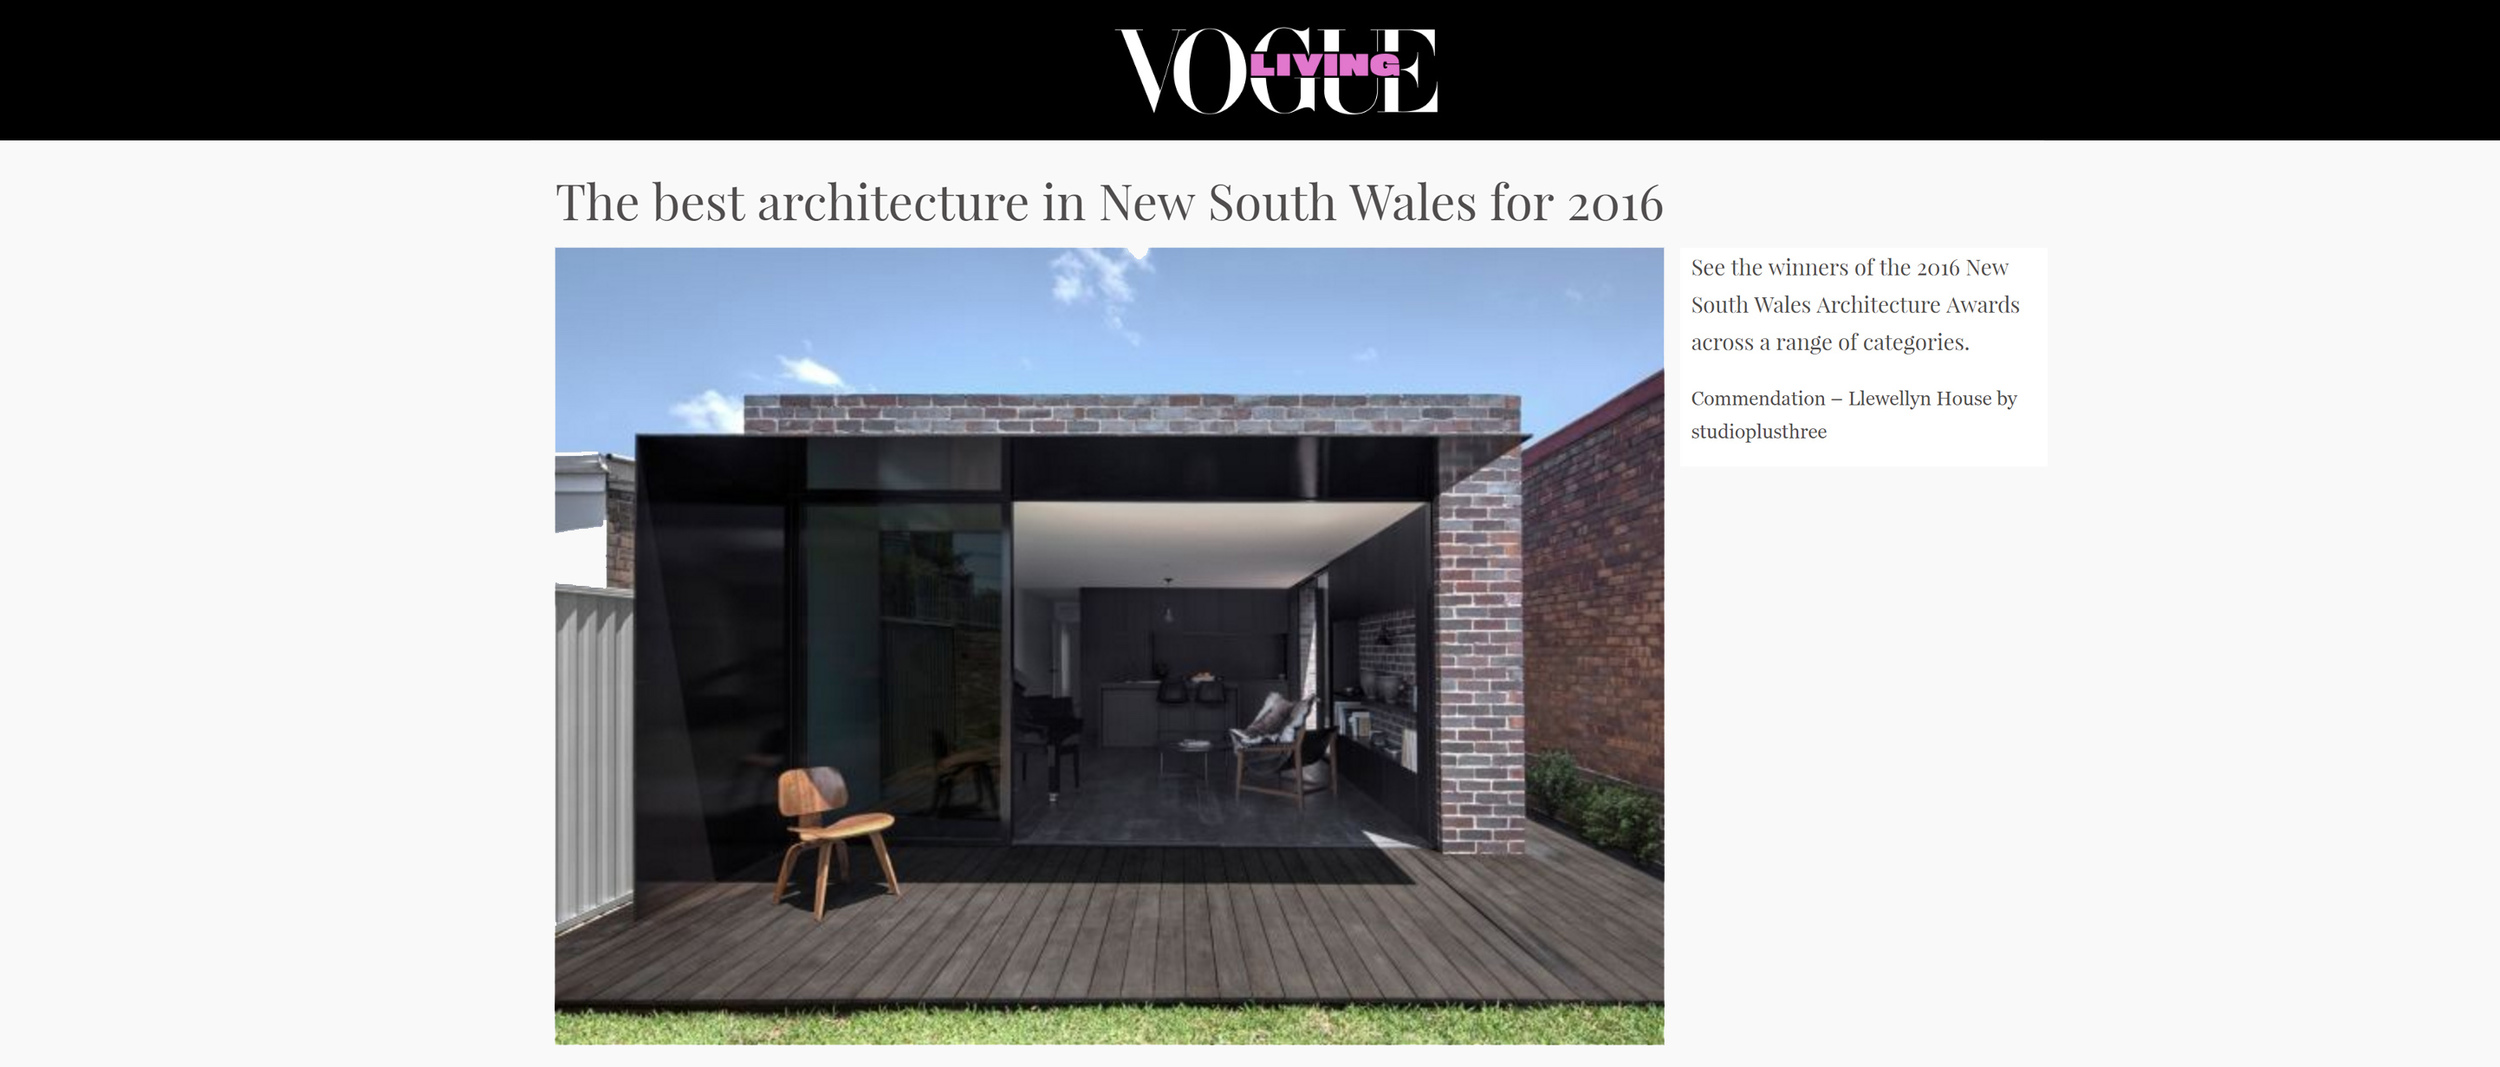 studioplusthree llewellyn house vogue living